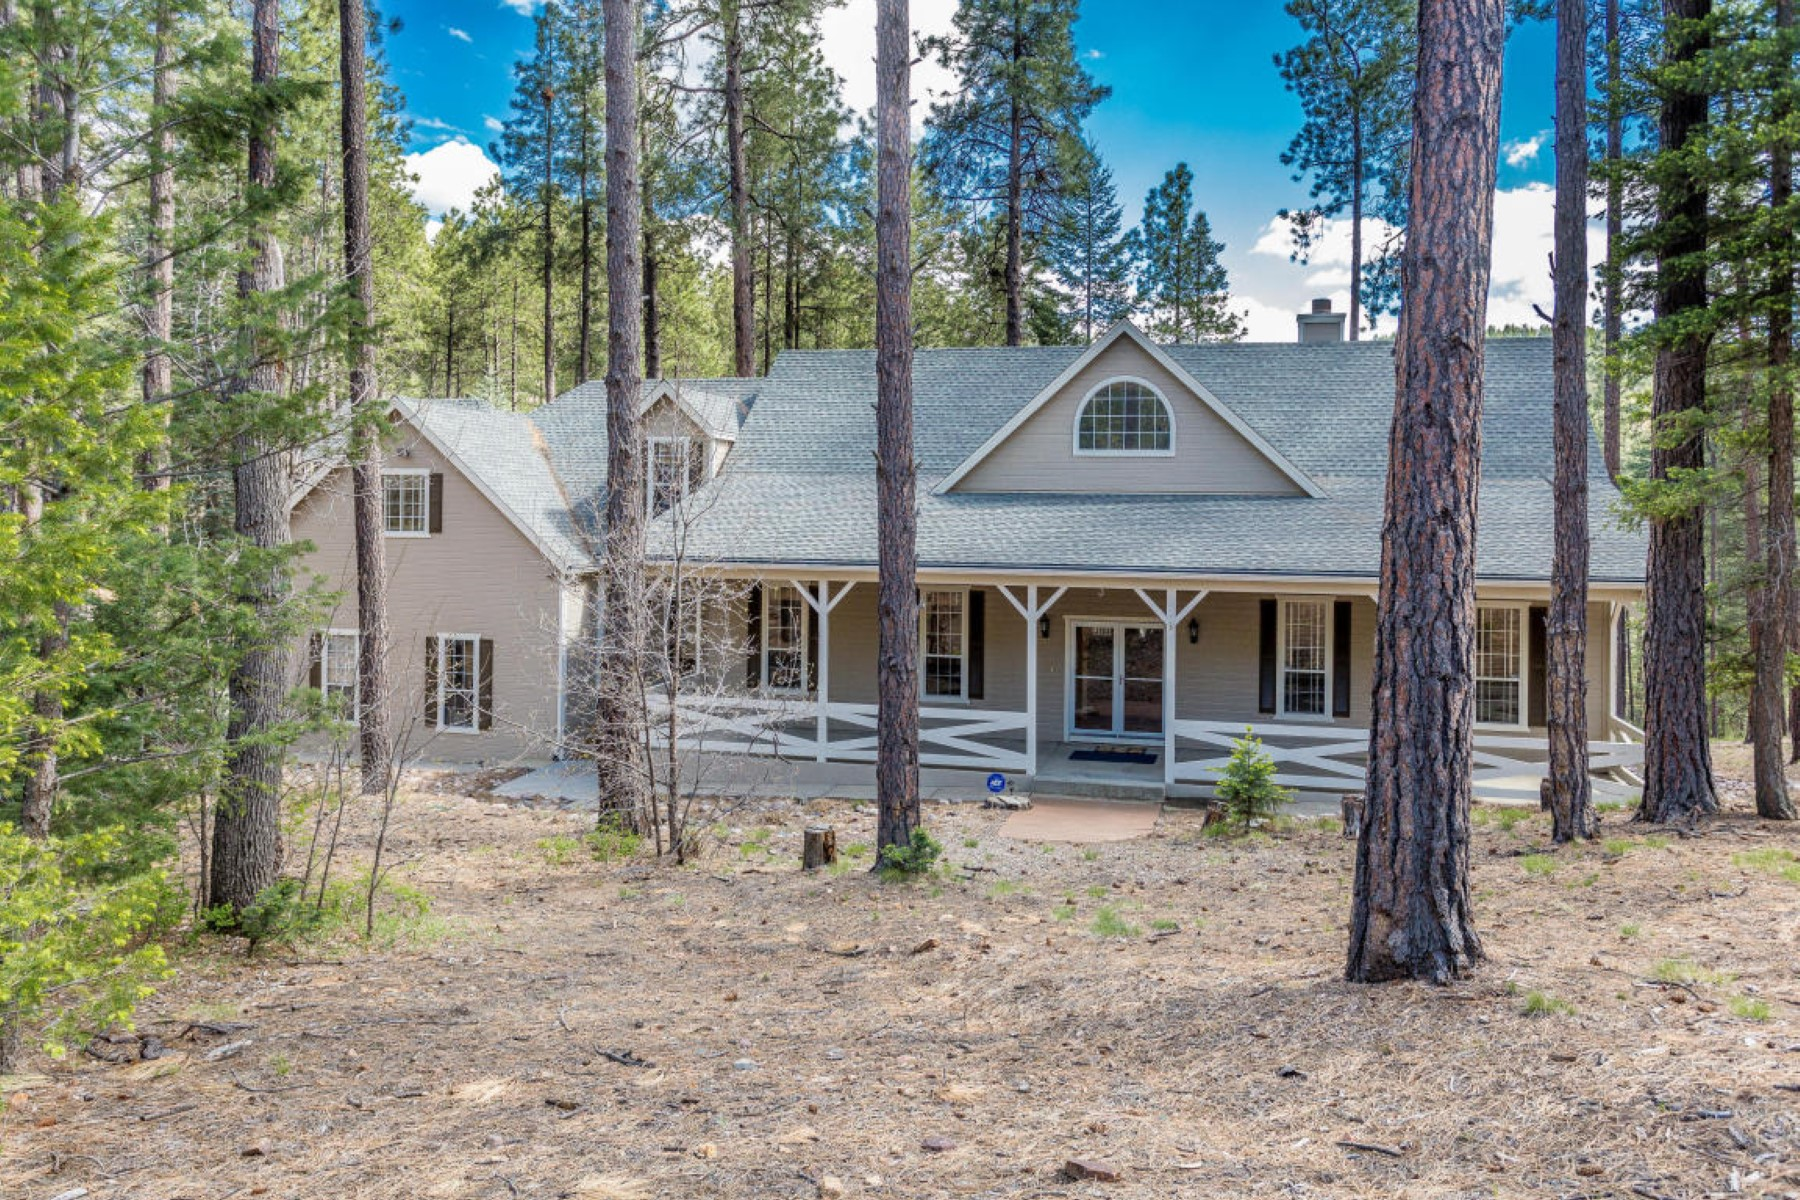 Single Family Home for Sale at Traditional east coast charm in this beautiful mountain estate home 8030 S Comstock Mine Rd Prescott, Arizona, 86303 United States